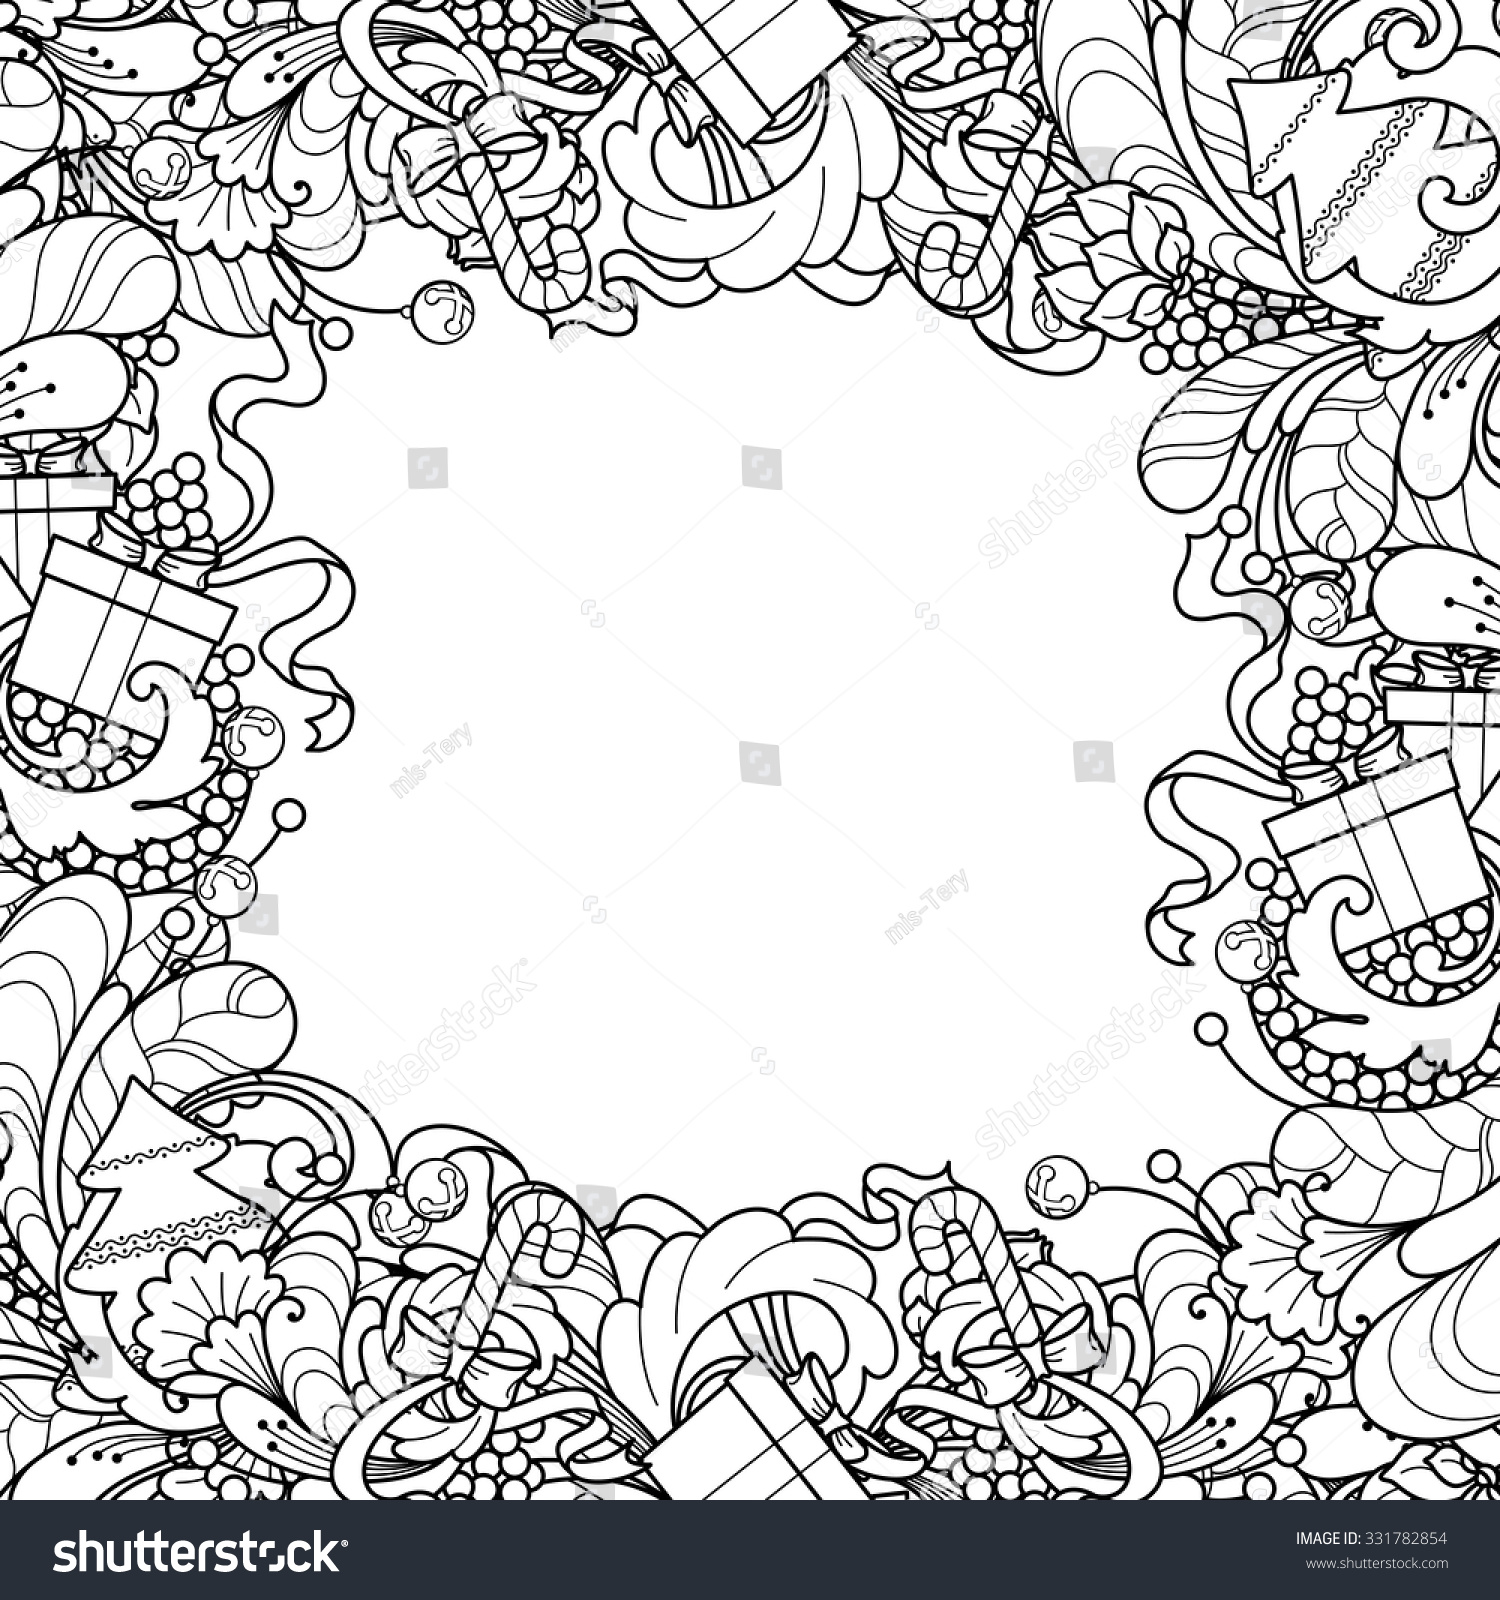 christmas picture frames coloring pages - photo#13